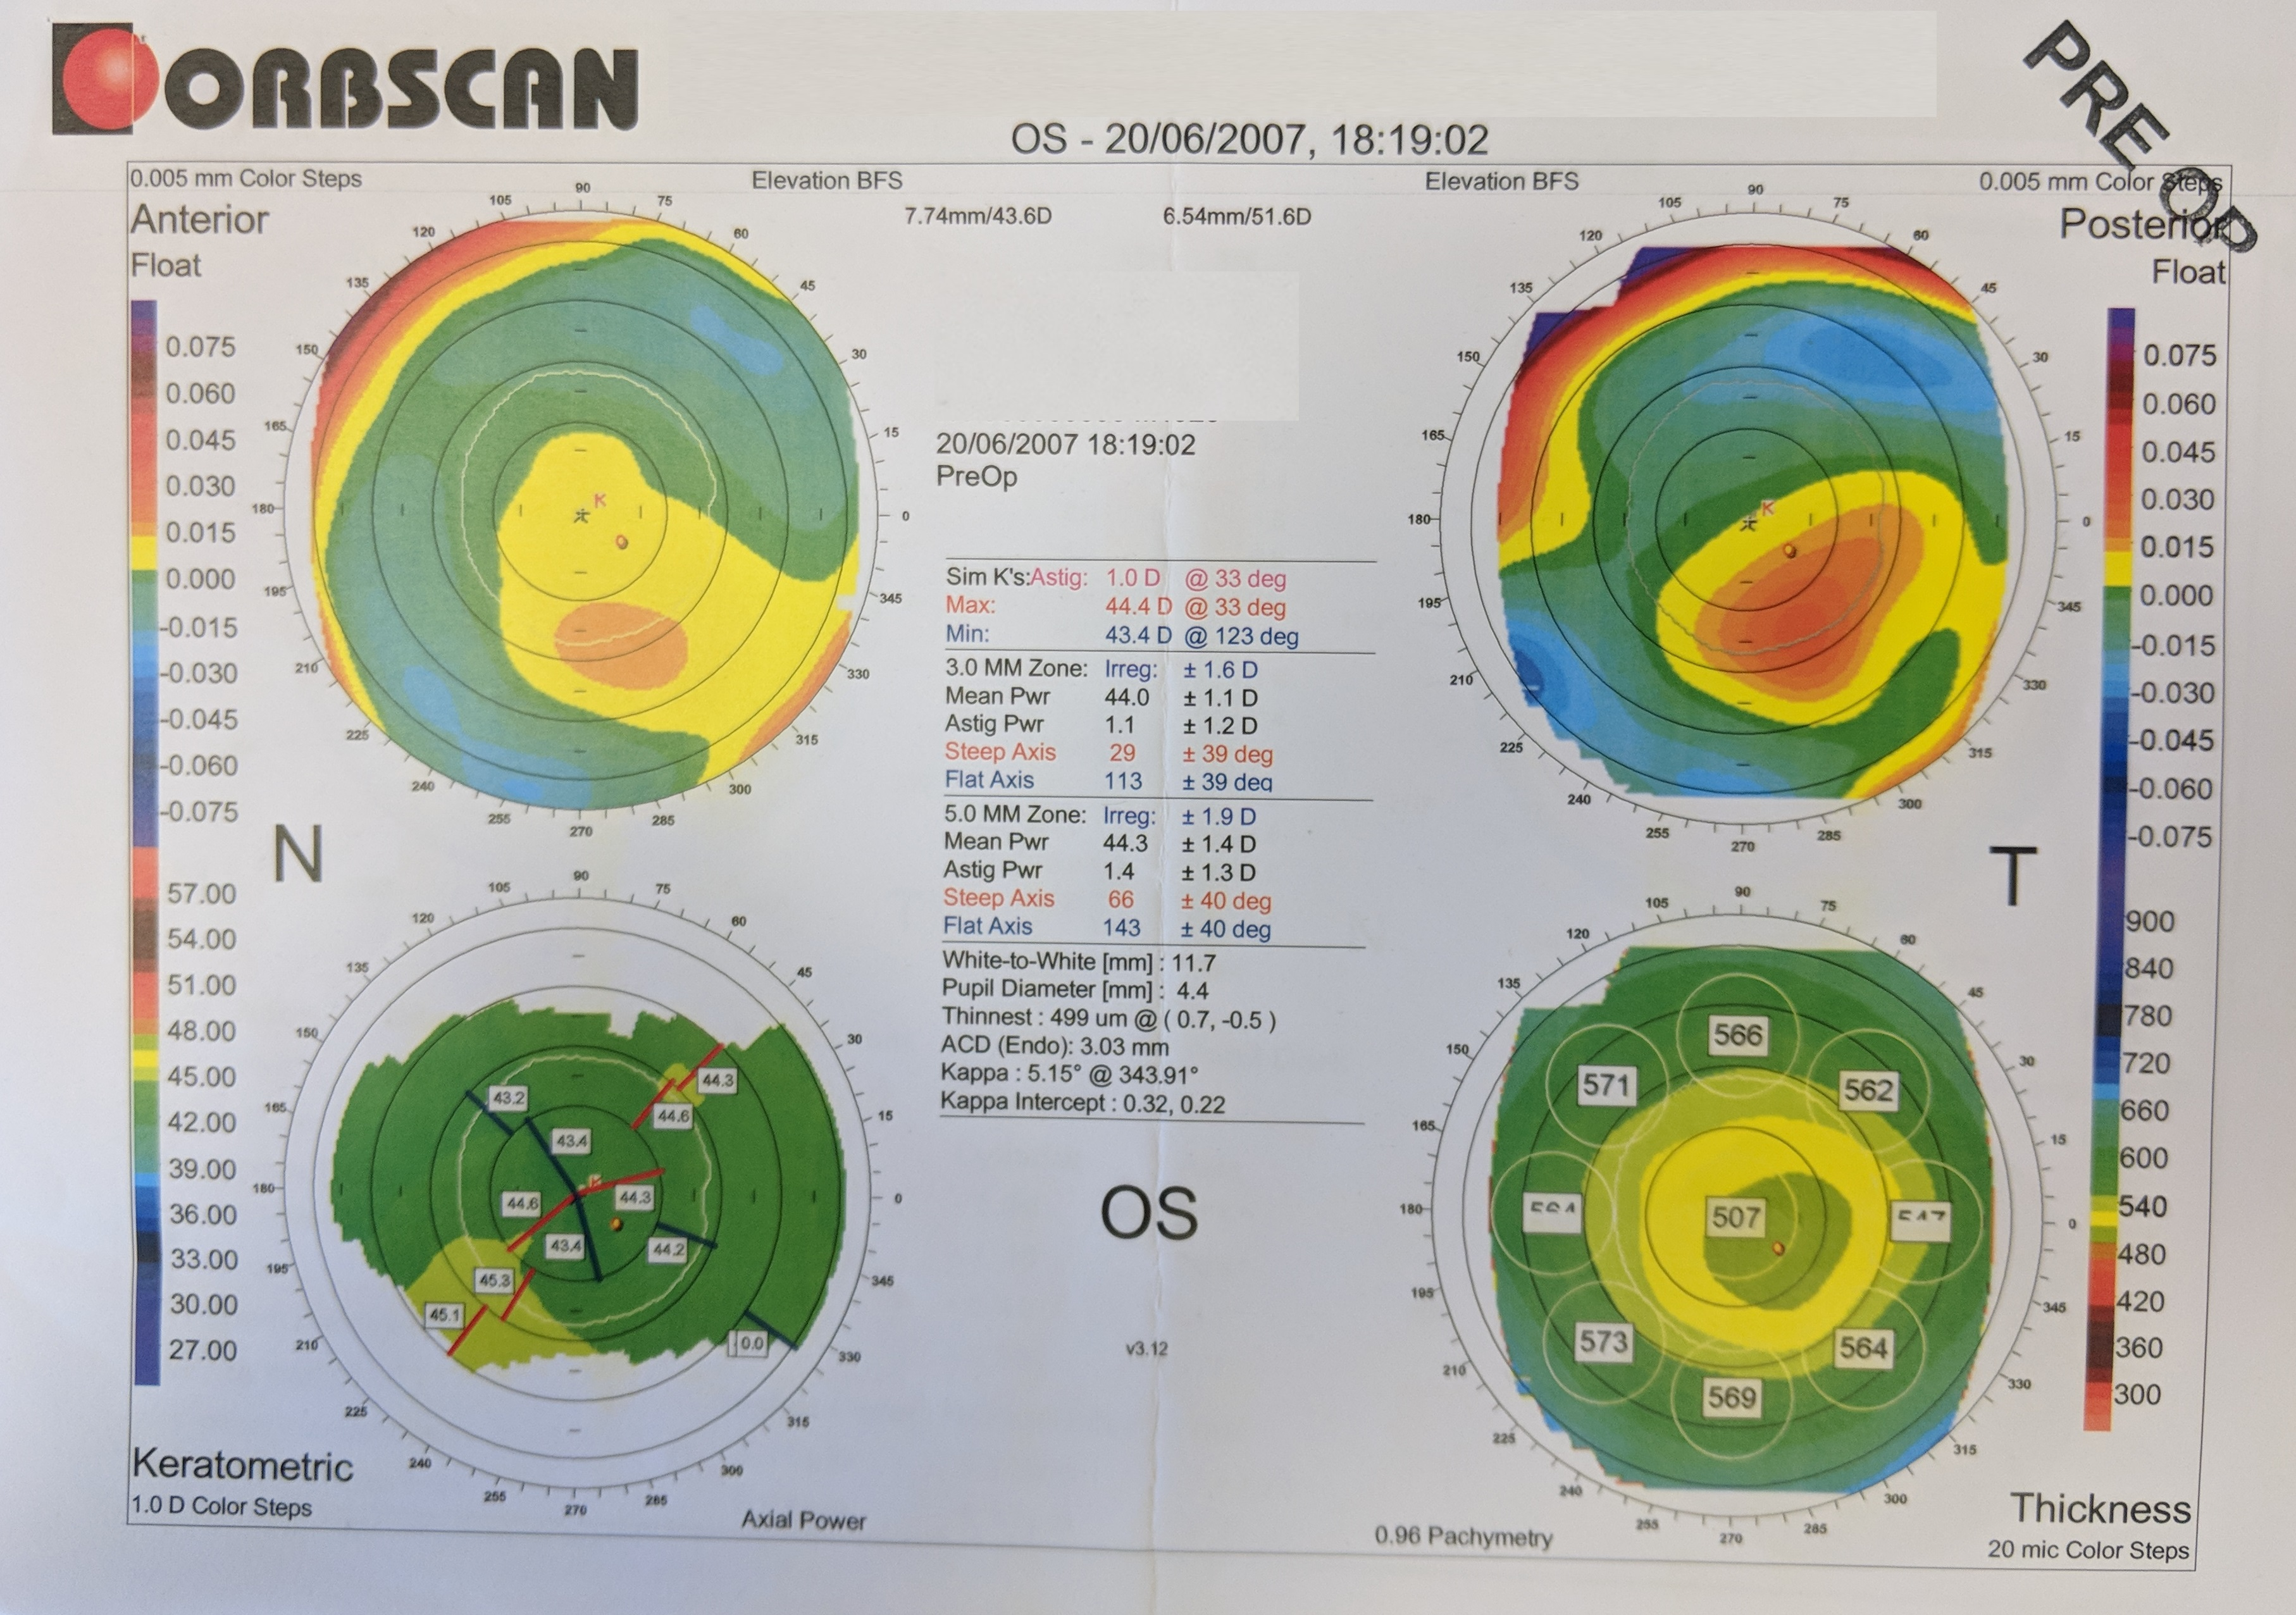 Orbscan map, preopertive